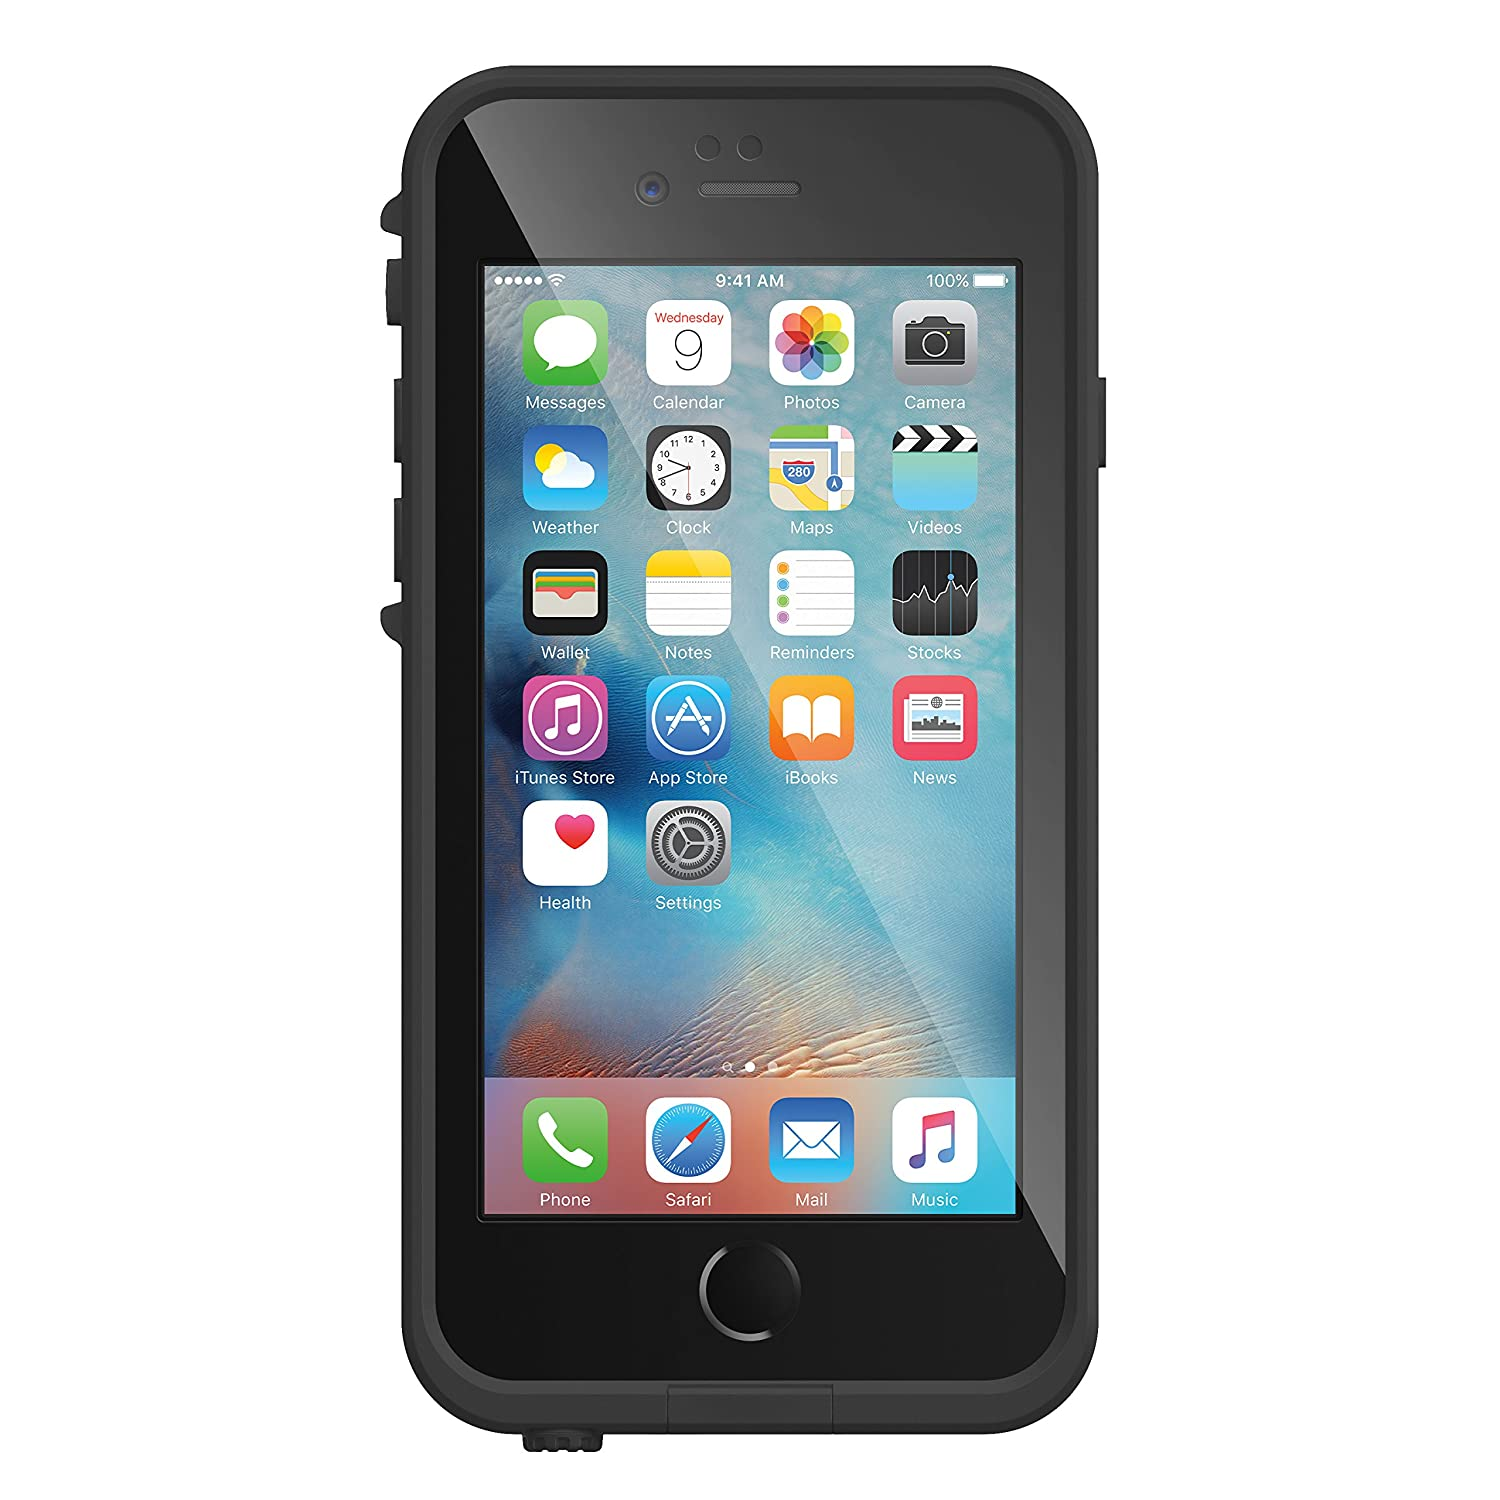 e1b9c4bbd41 Amazon.com: Lifeproof FRĒ SERIES iPhone 6/6s Waterproof Case (4.7